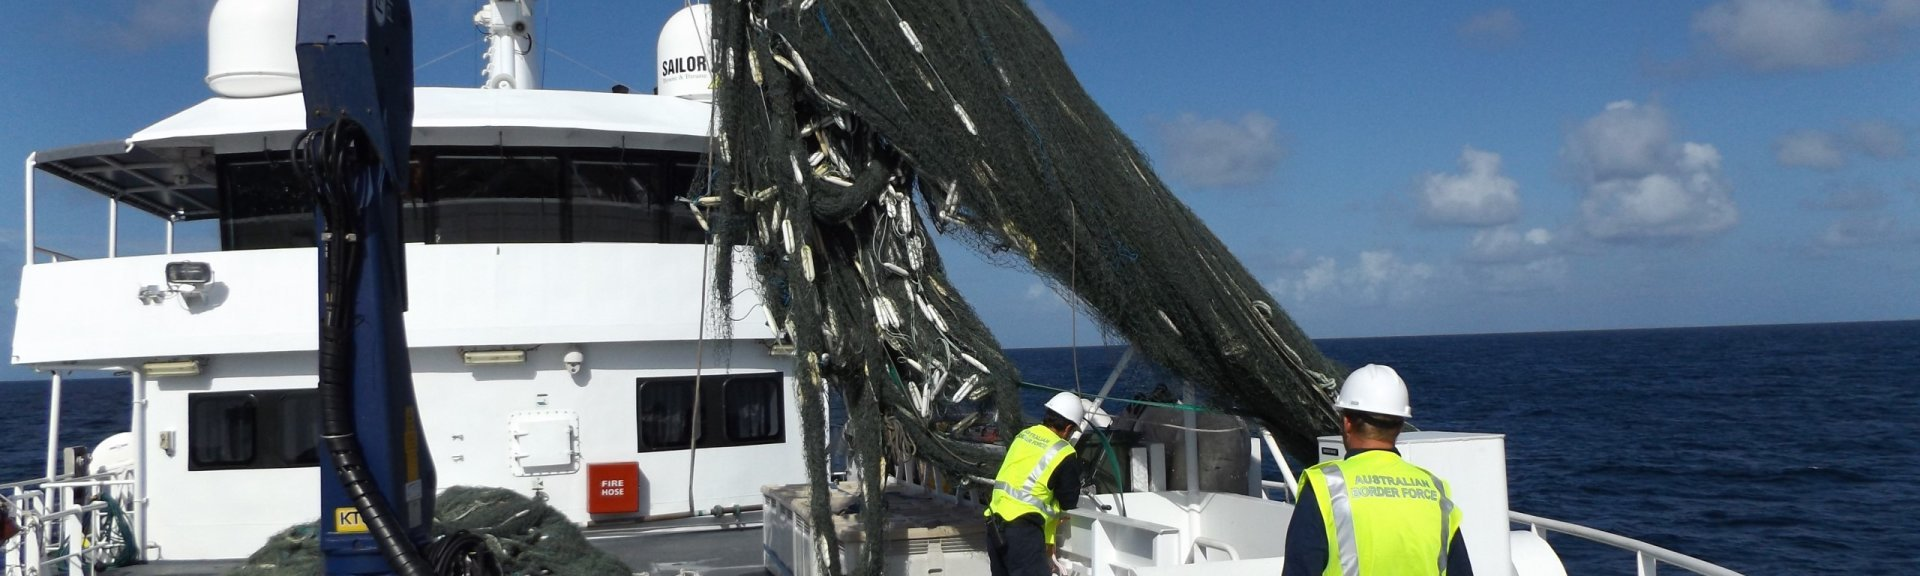 Staff pull ghost net out of the ocean onto a boat. Credit: Australian Fisheries Management Authority